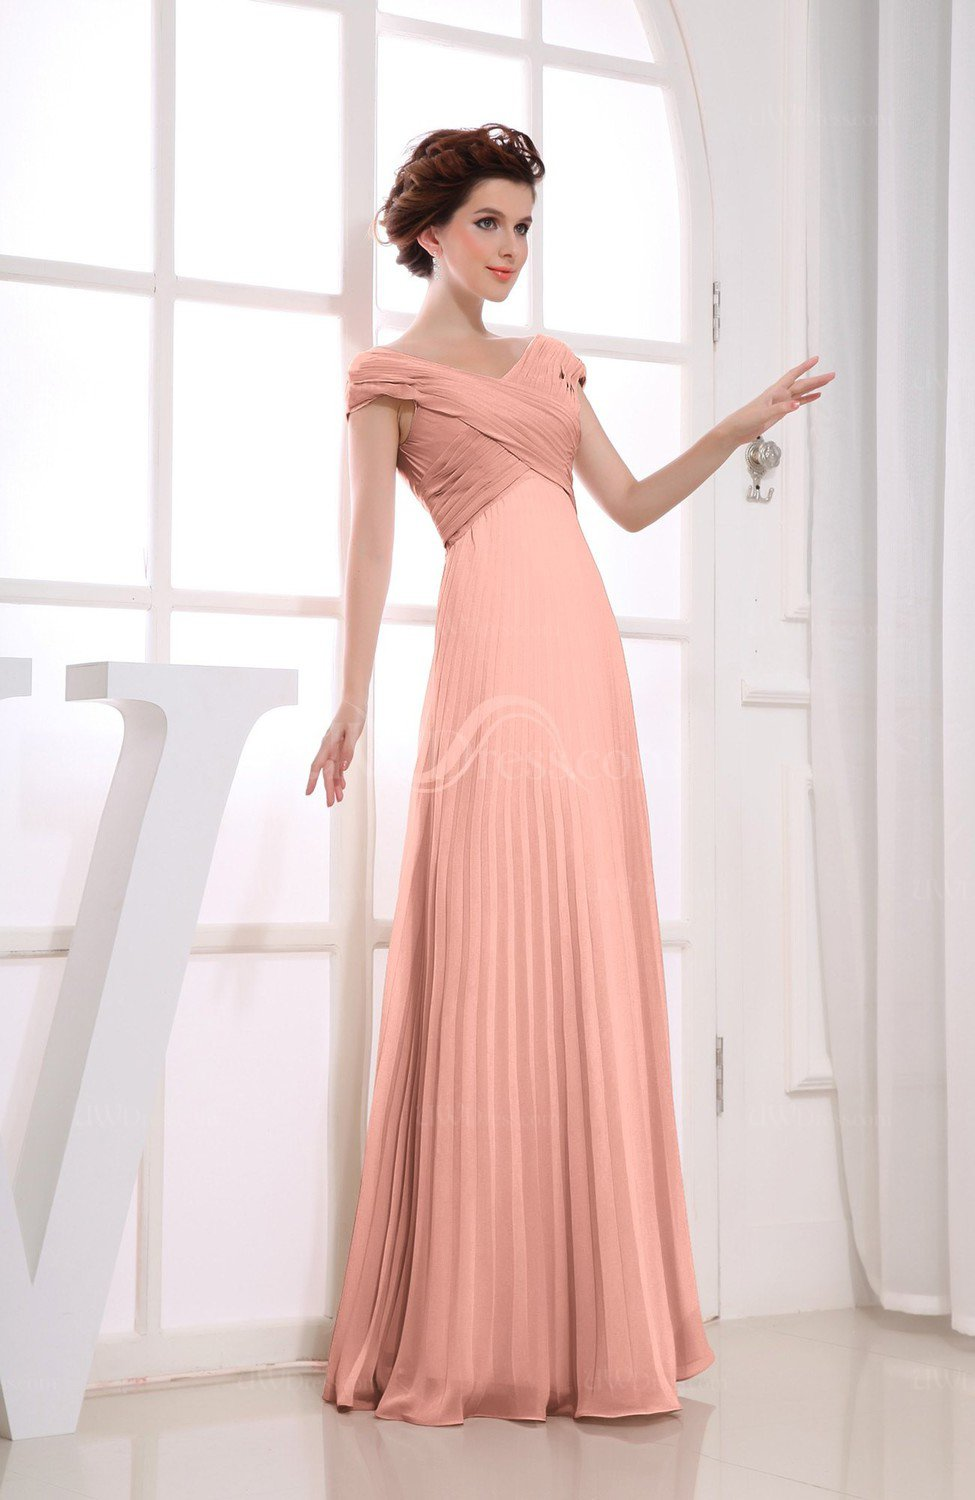 87cb9f0a863bd Vintage Empire Short Sleeve Zipper Chiffon Floor Length Bridesmaid Dresses